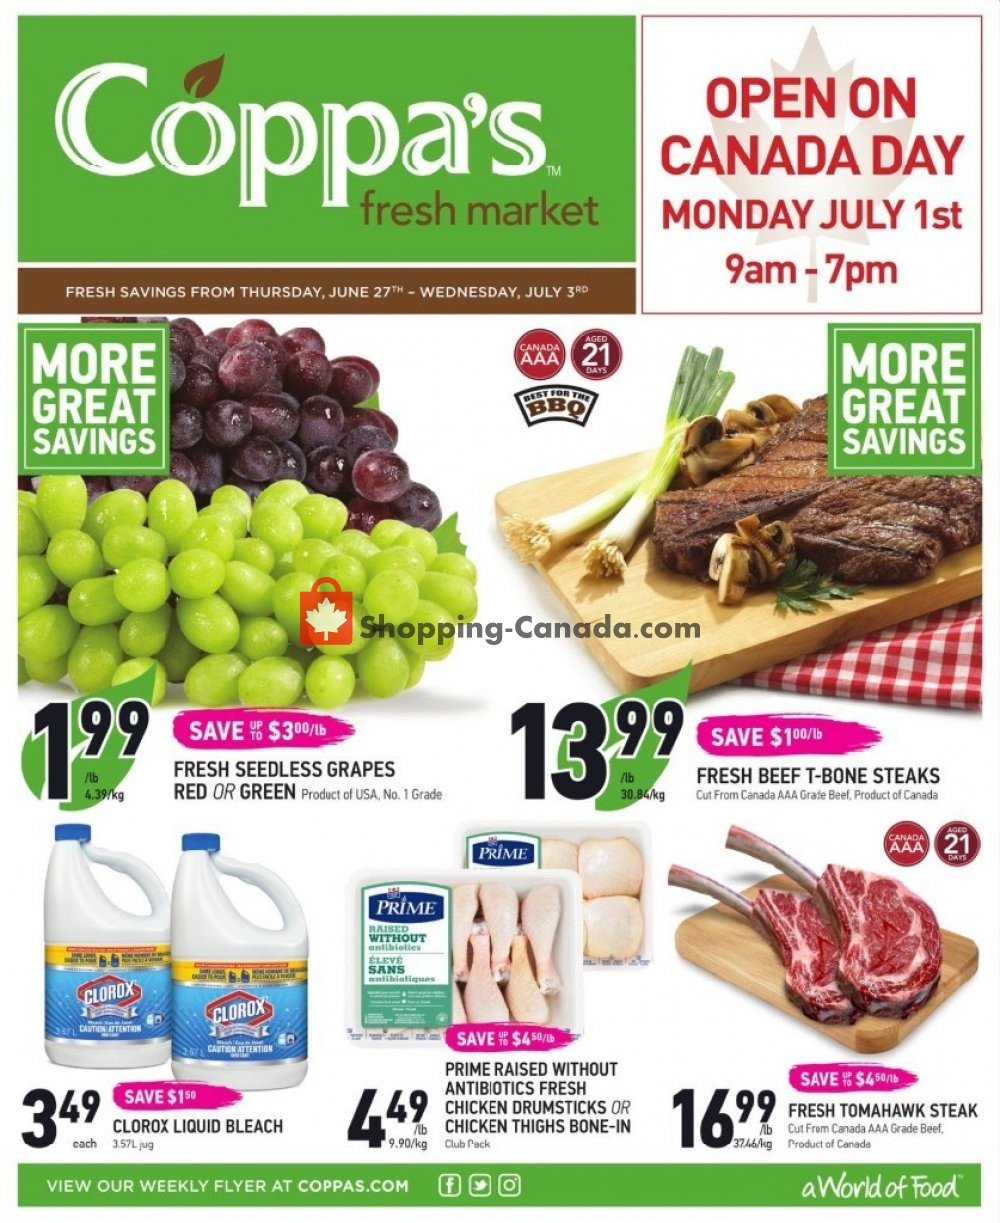 Flyer Coppa's Fresh Market Canada - from Thursday June 27, 2019 to Wednesday July 3, 2019